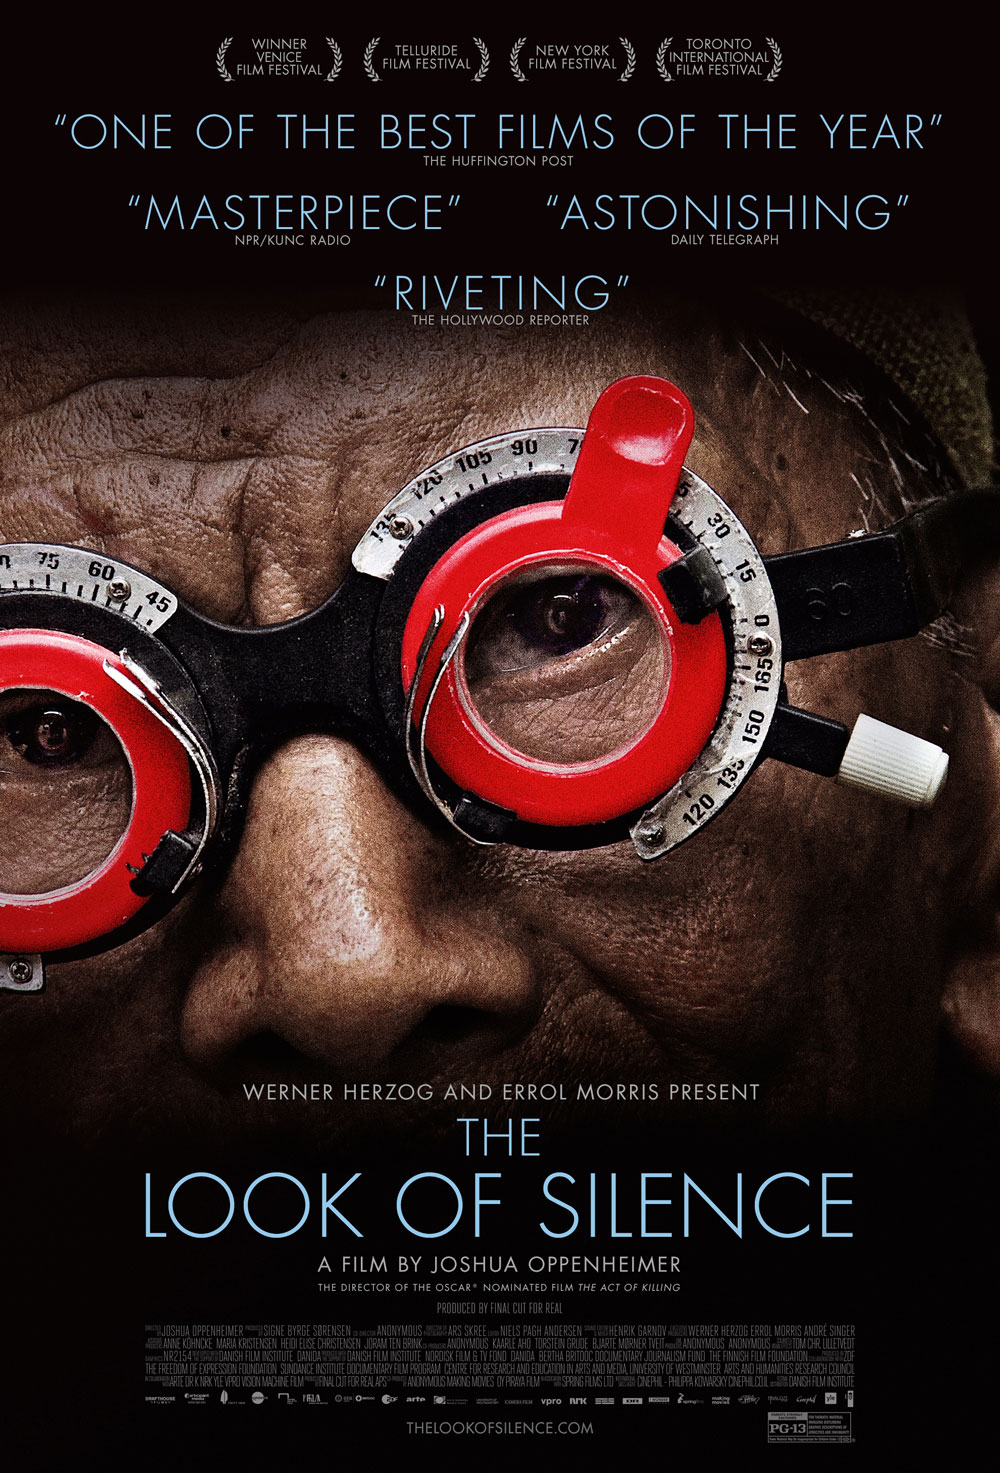 the look of silence Top 25 Films of 2015